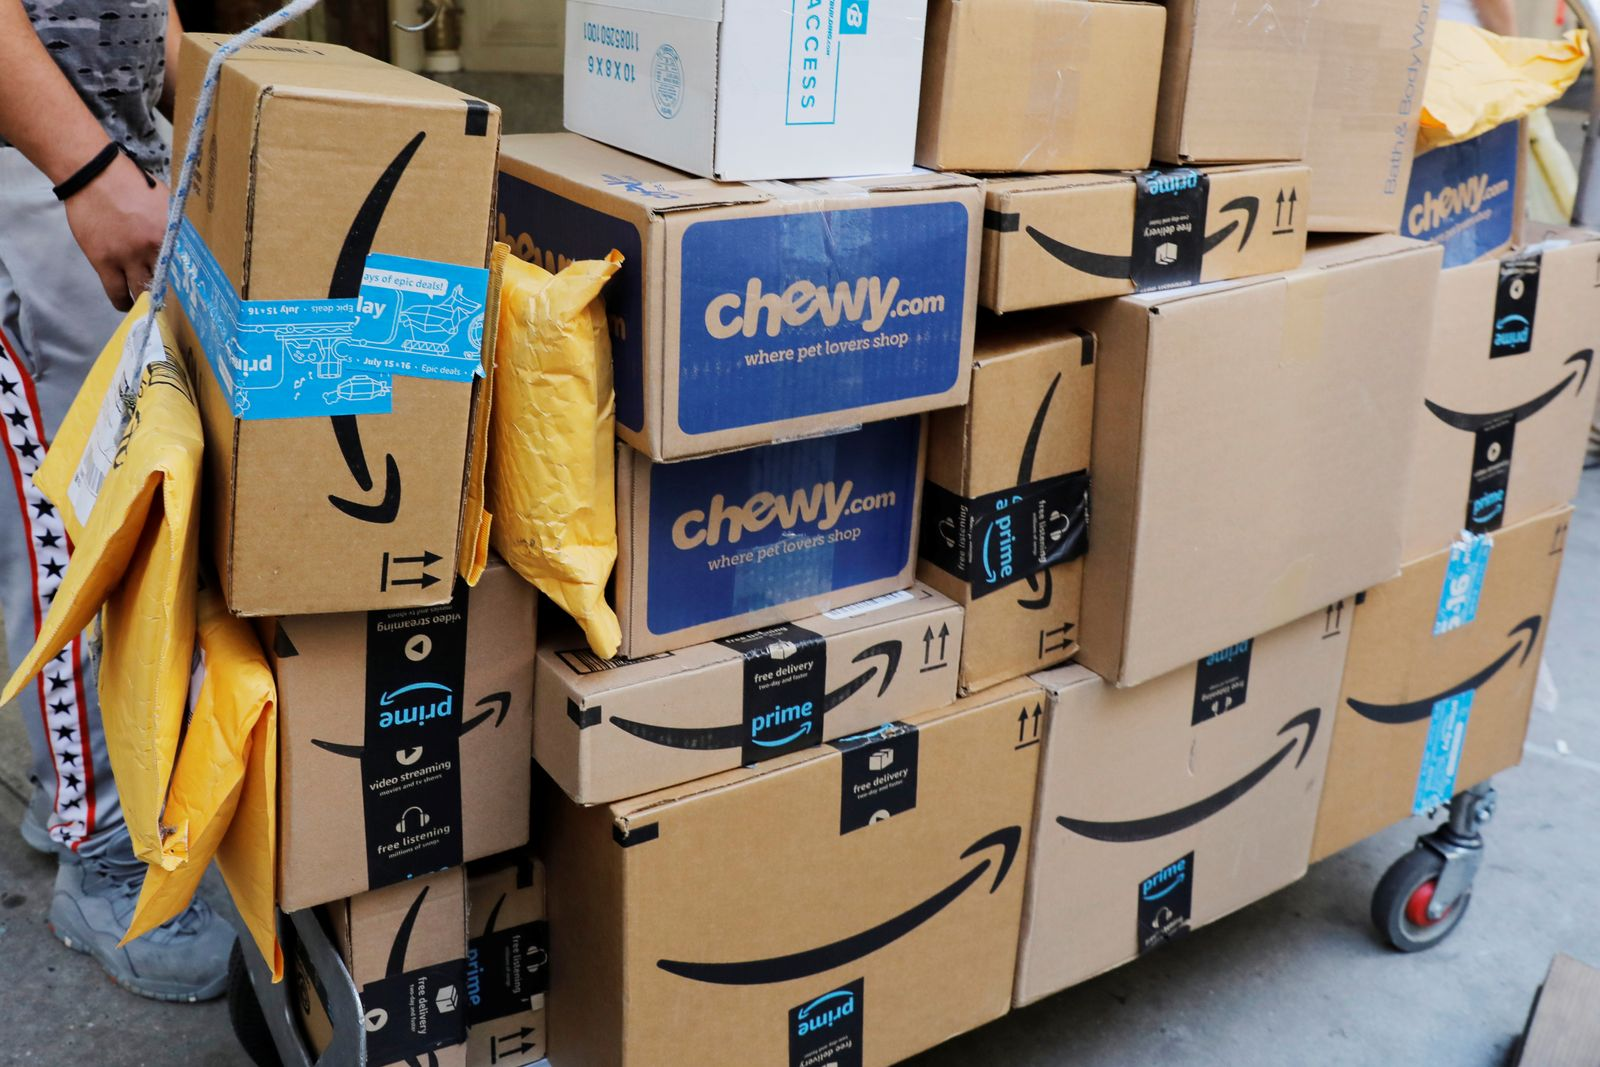 A delivery cart loaded with a number of packages from Amazon stands on a sidewalk in New York City